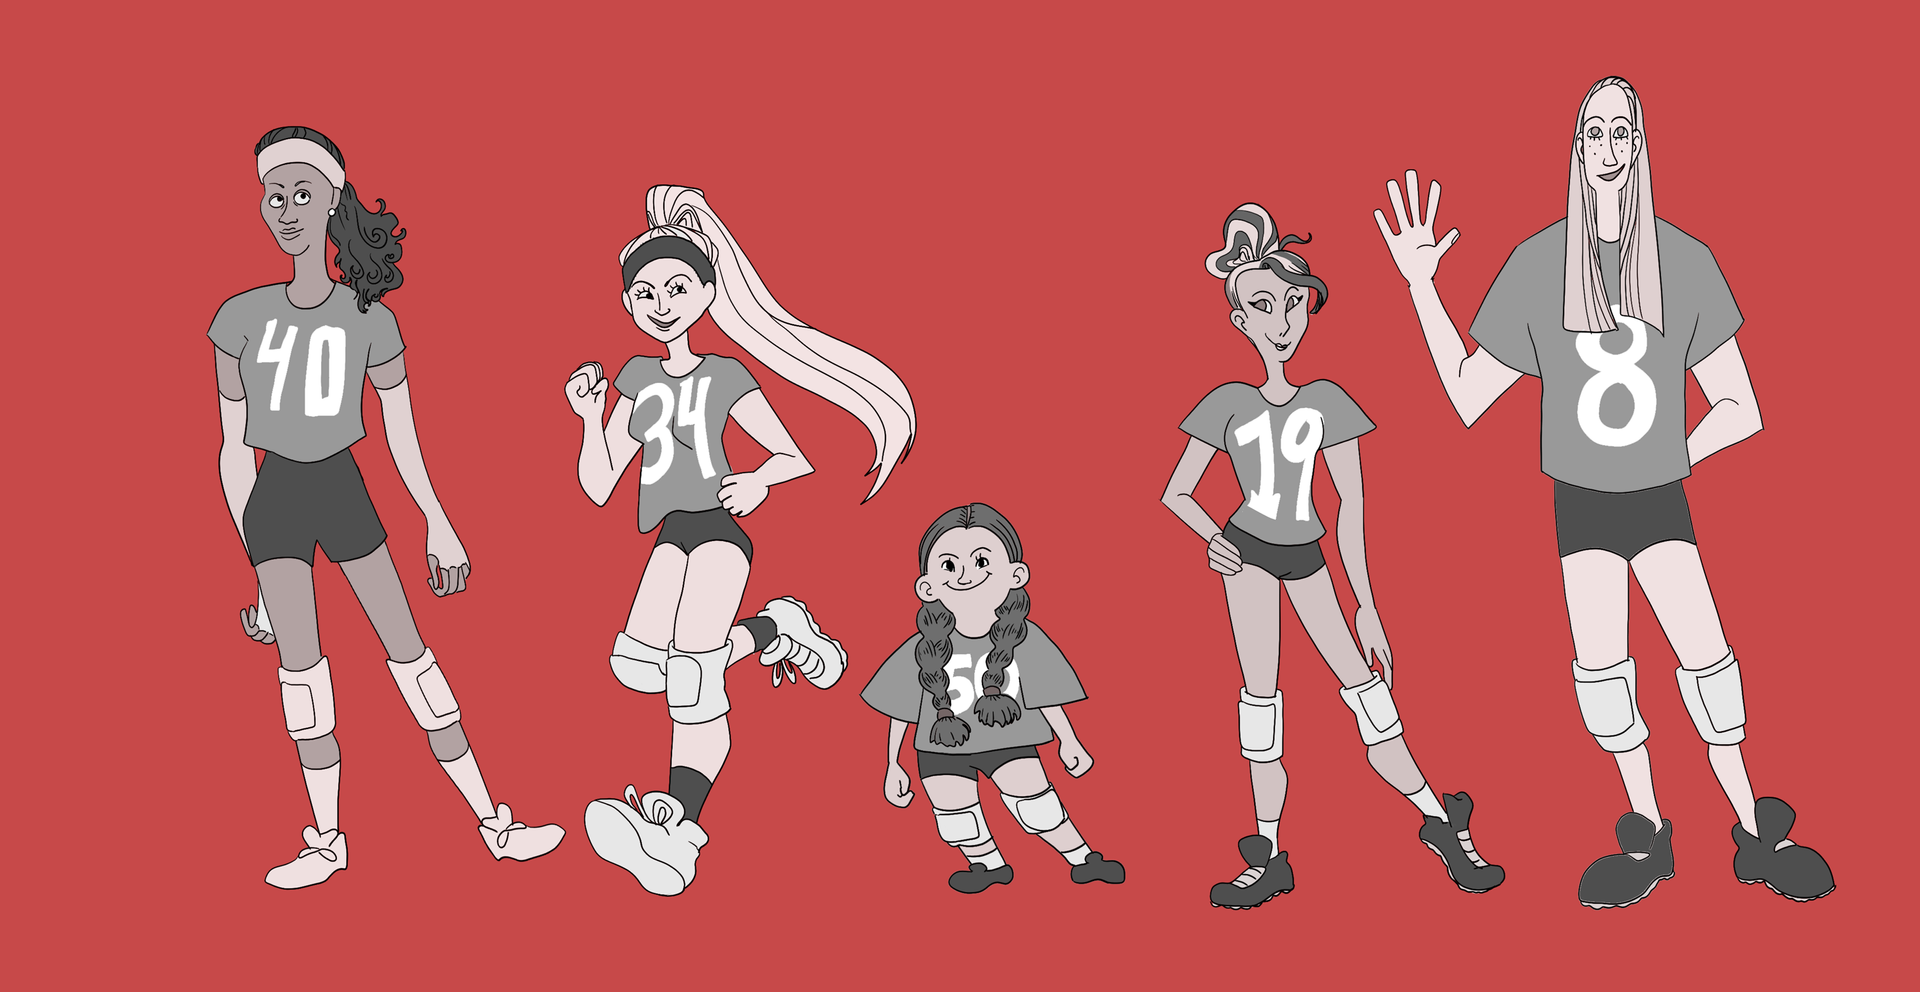 romain_volleyball_characterdesign_red.pn